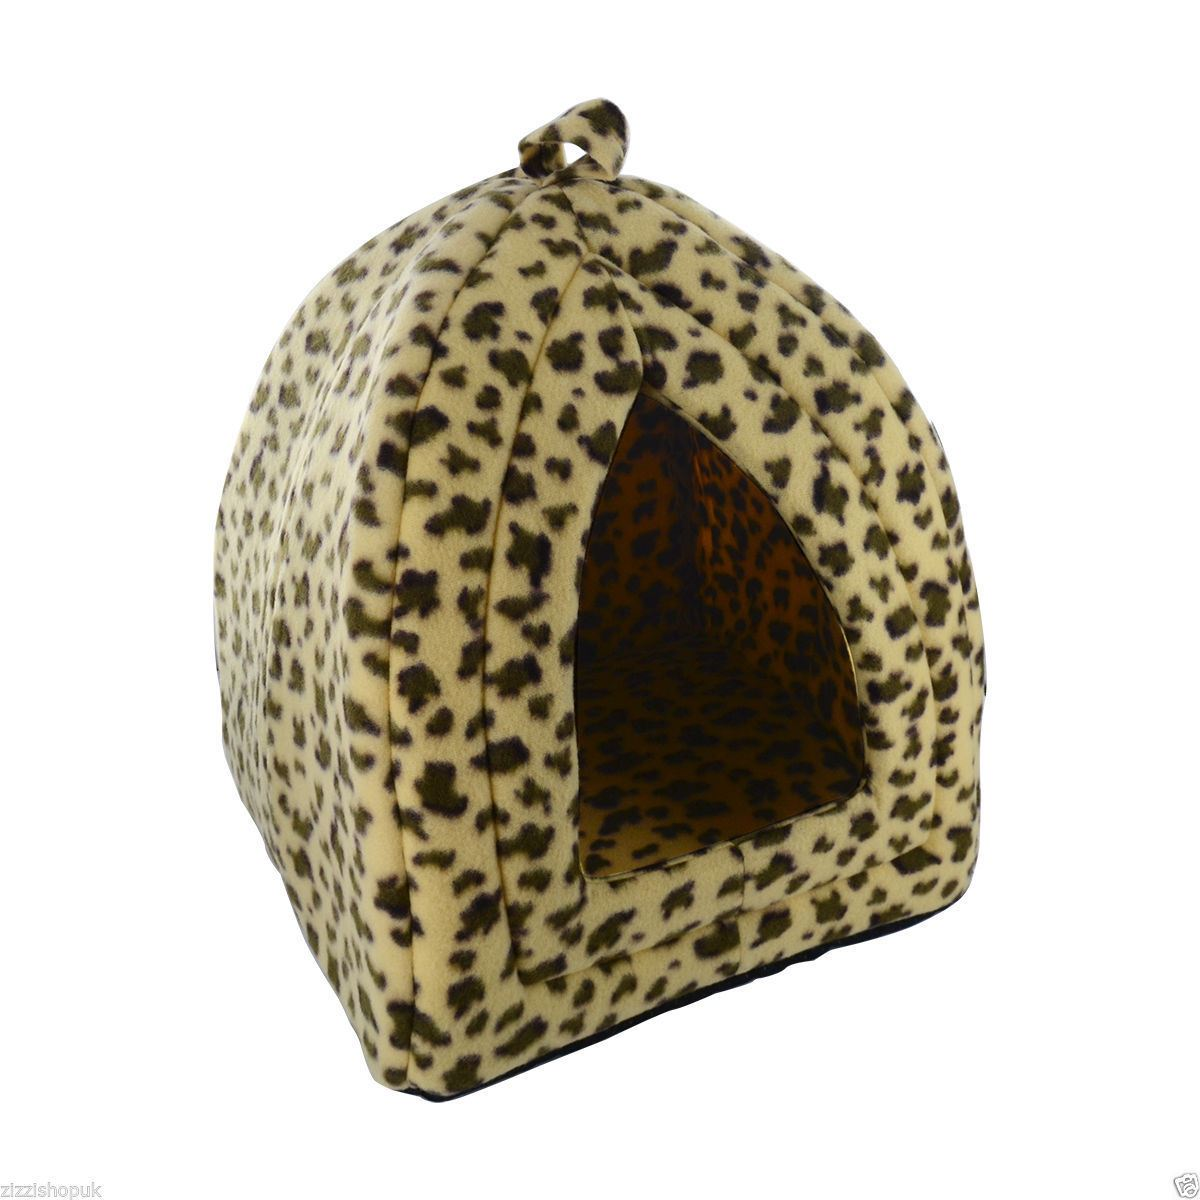 New-Dog-Cat-Warm-Fleece-Winter-Bed-Igloo-House-Soft-Luxury-Basket-For-Pets-Puppy